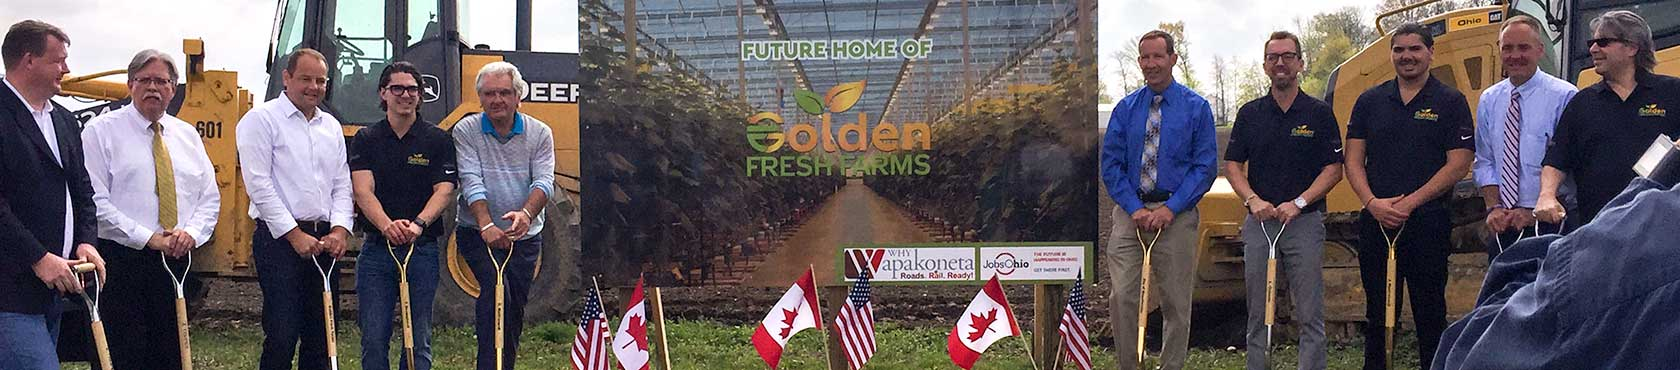 Golden Fresh Farms ground breaking